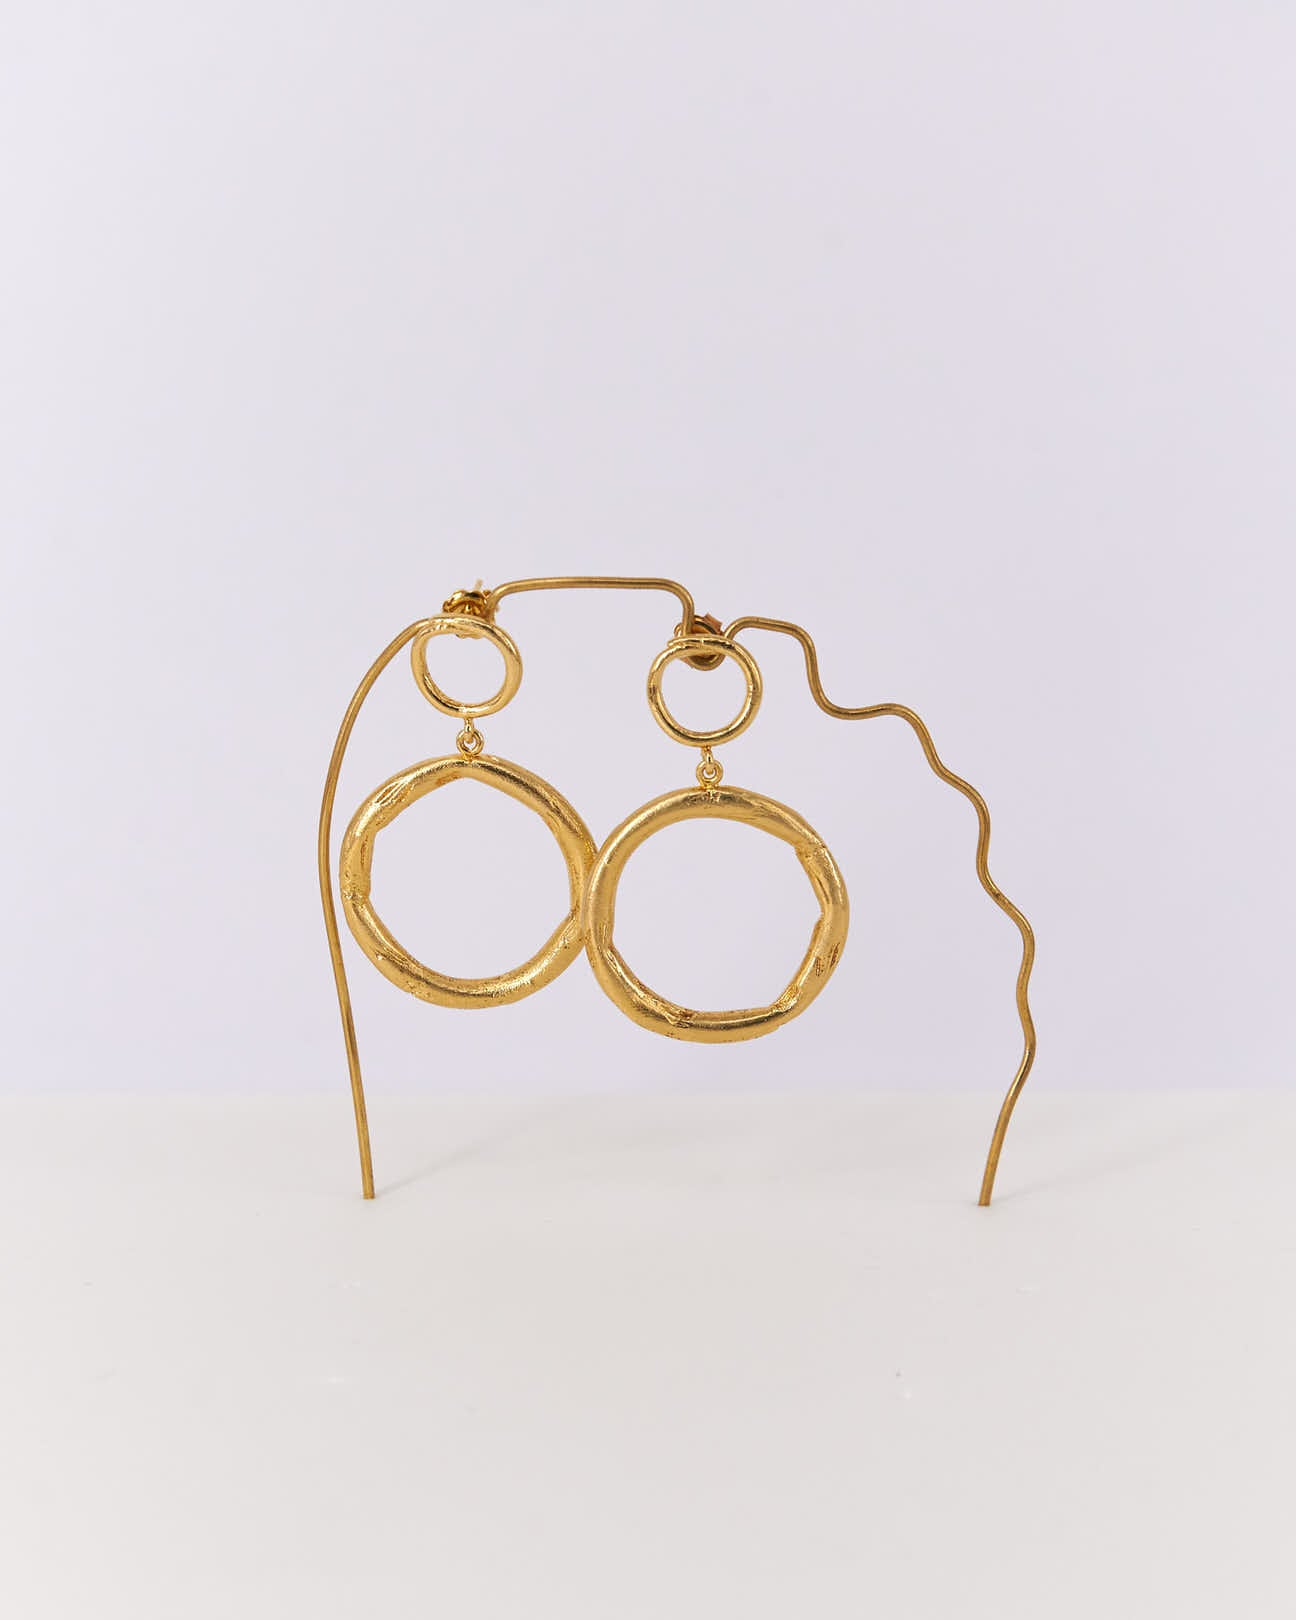 Earrings-Doublering-CristinaJunquero-Gold-Handmade-Nuovum-Barcelona-localdesigners